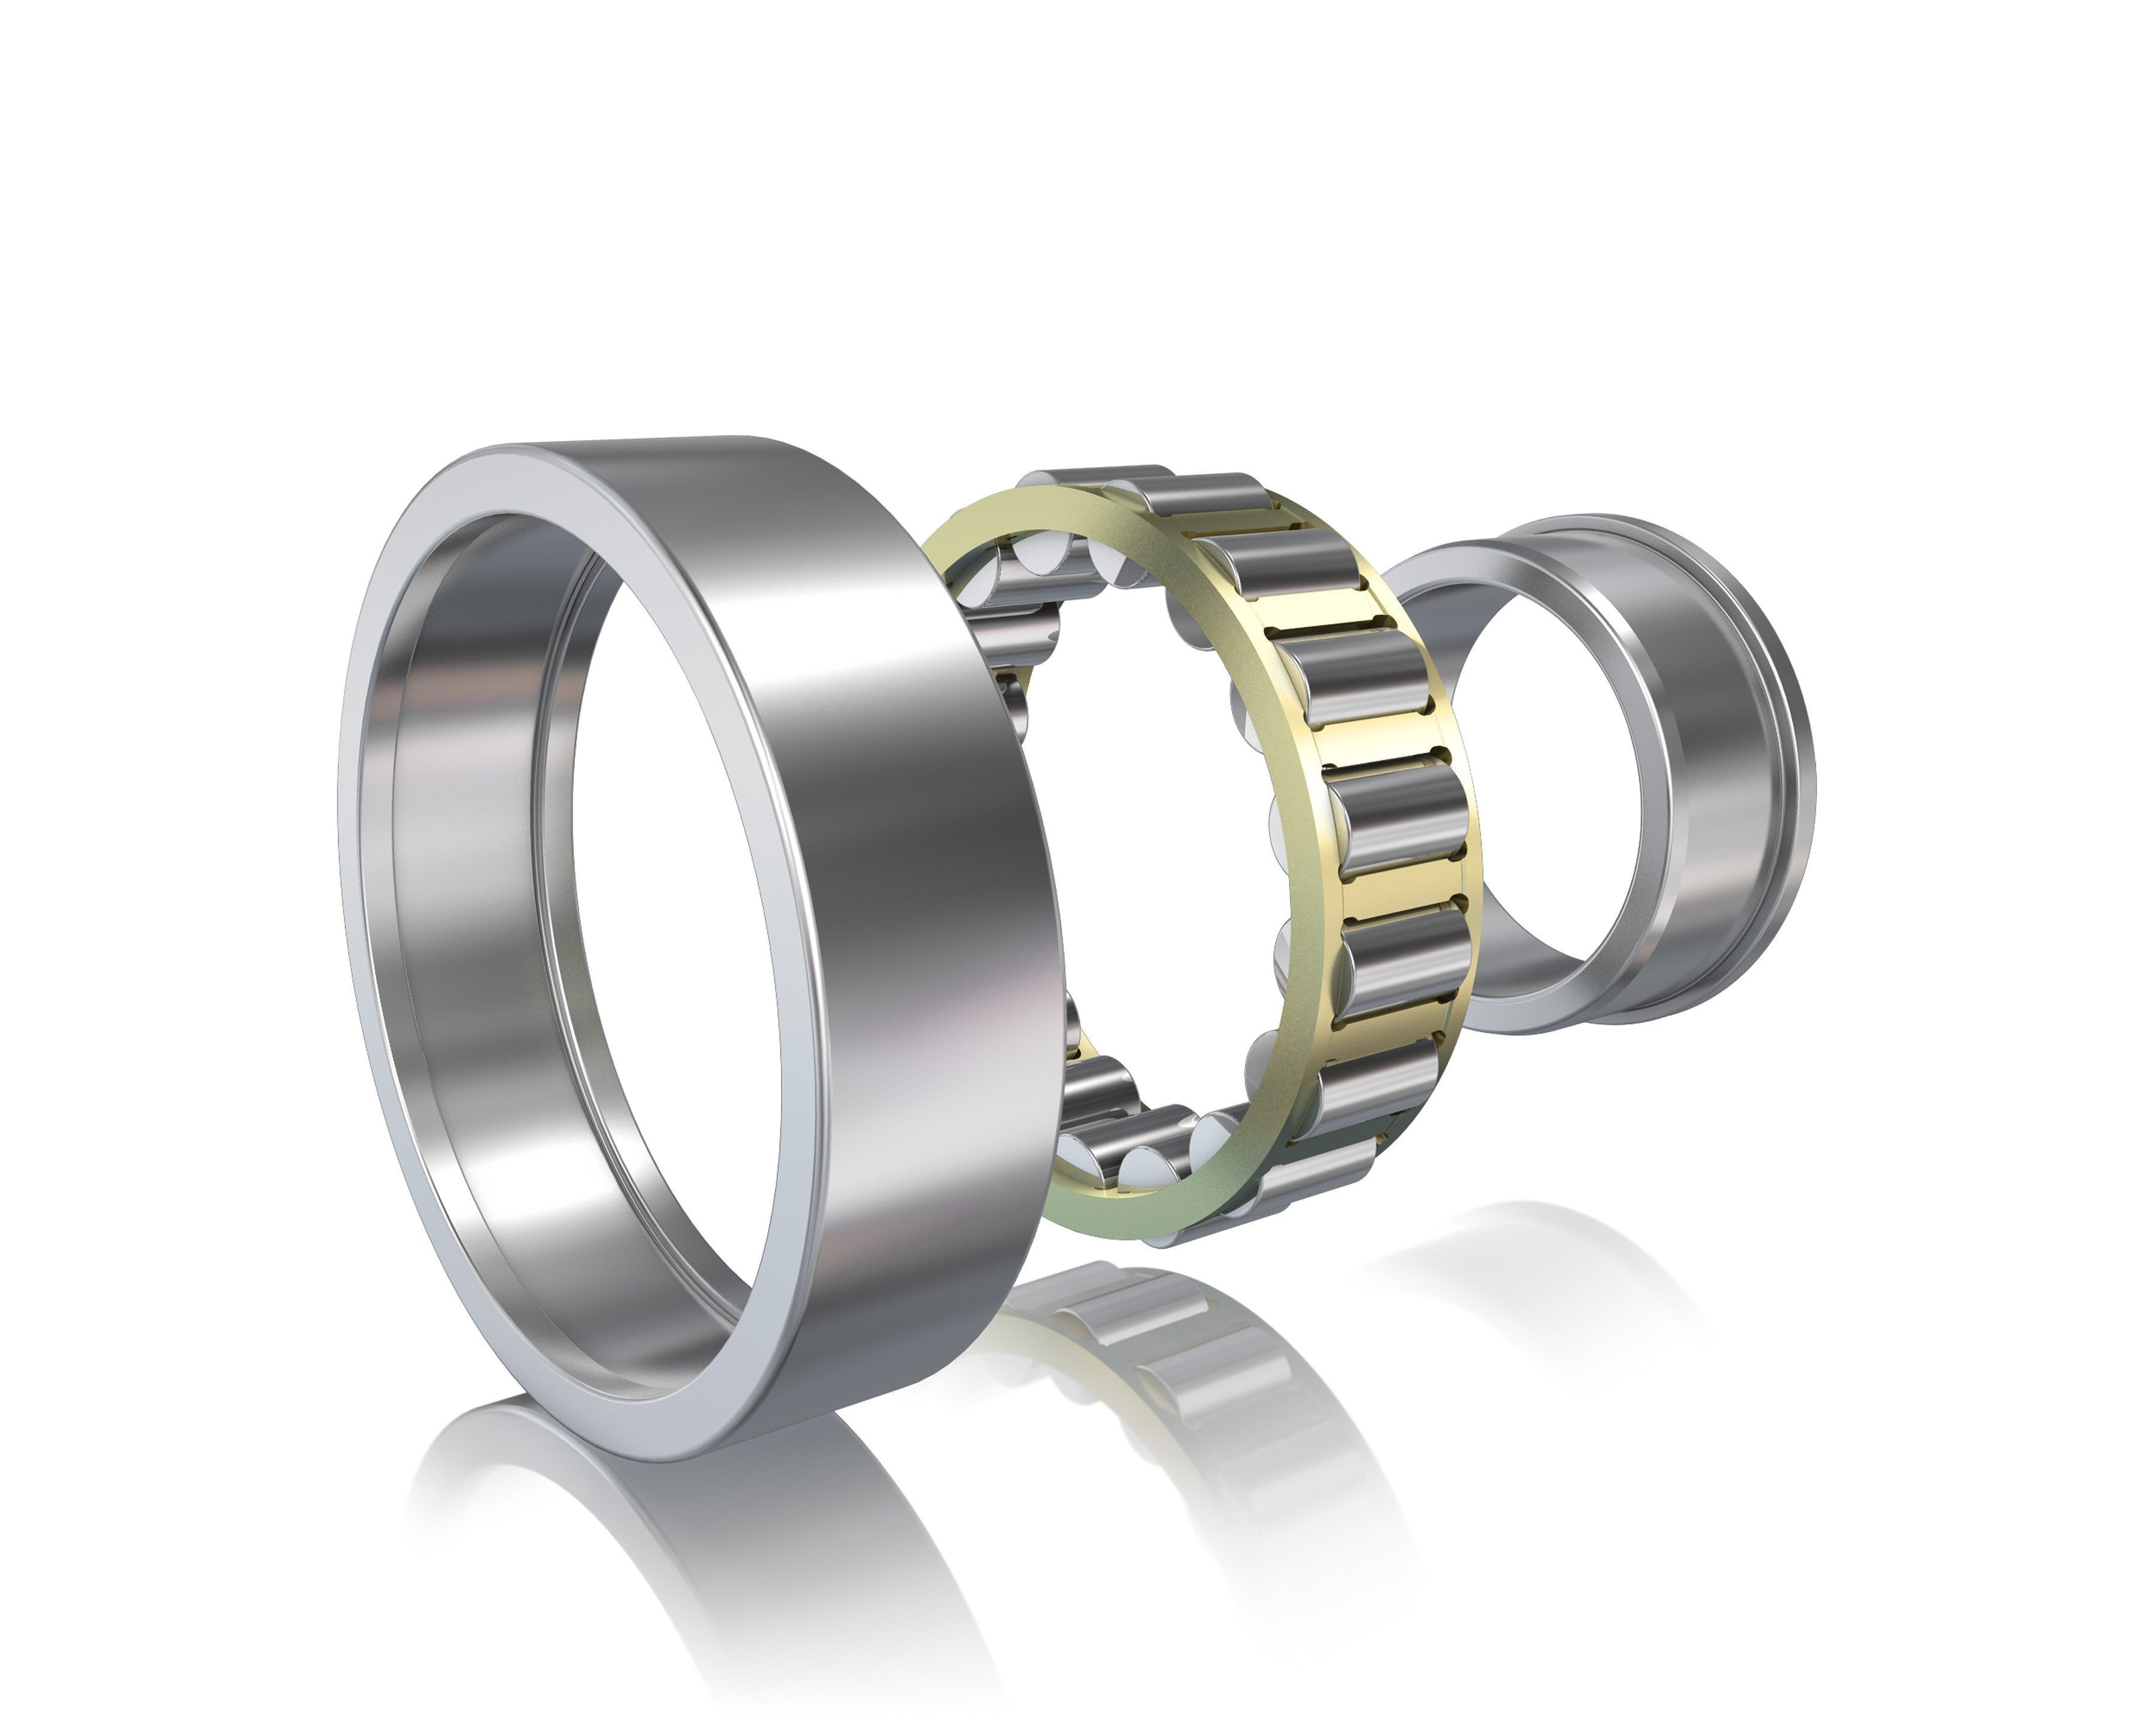 NJ313-ECP-SKF, Bearings, Cylindrical roller bearings